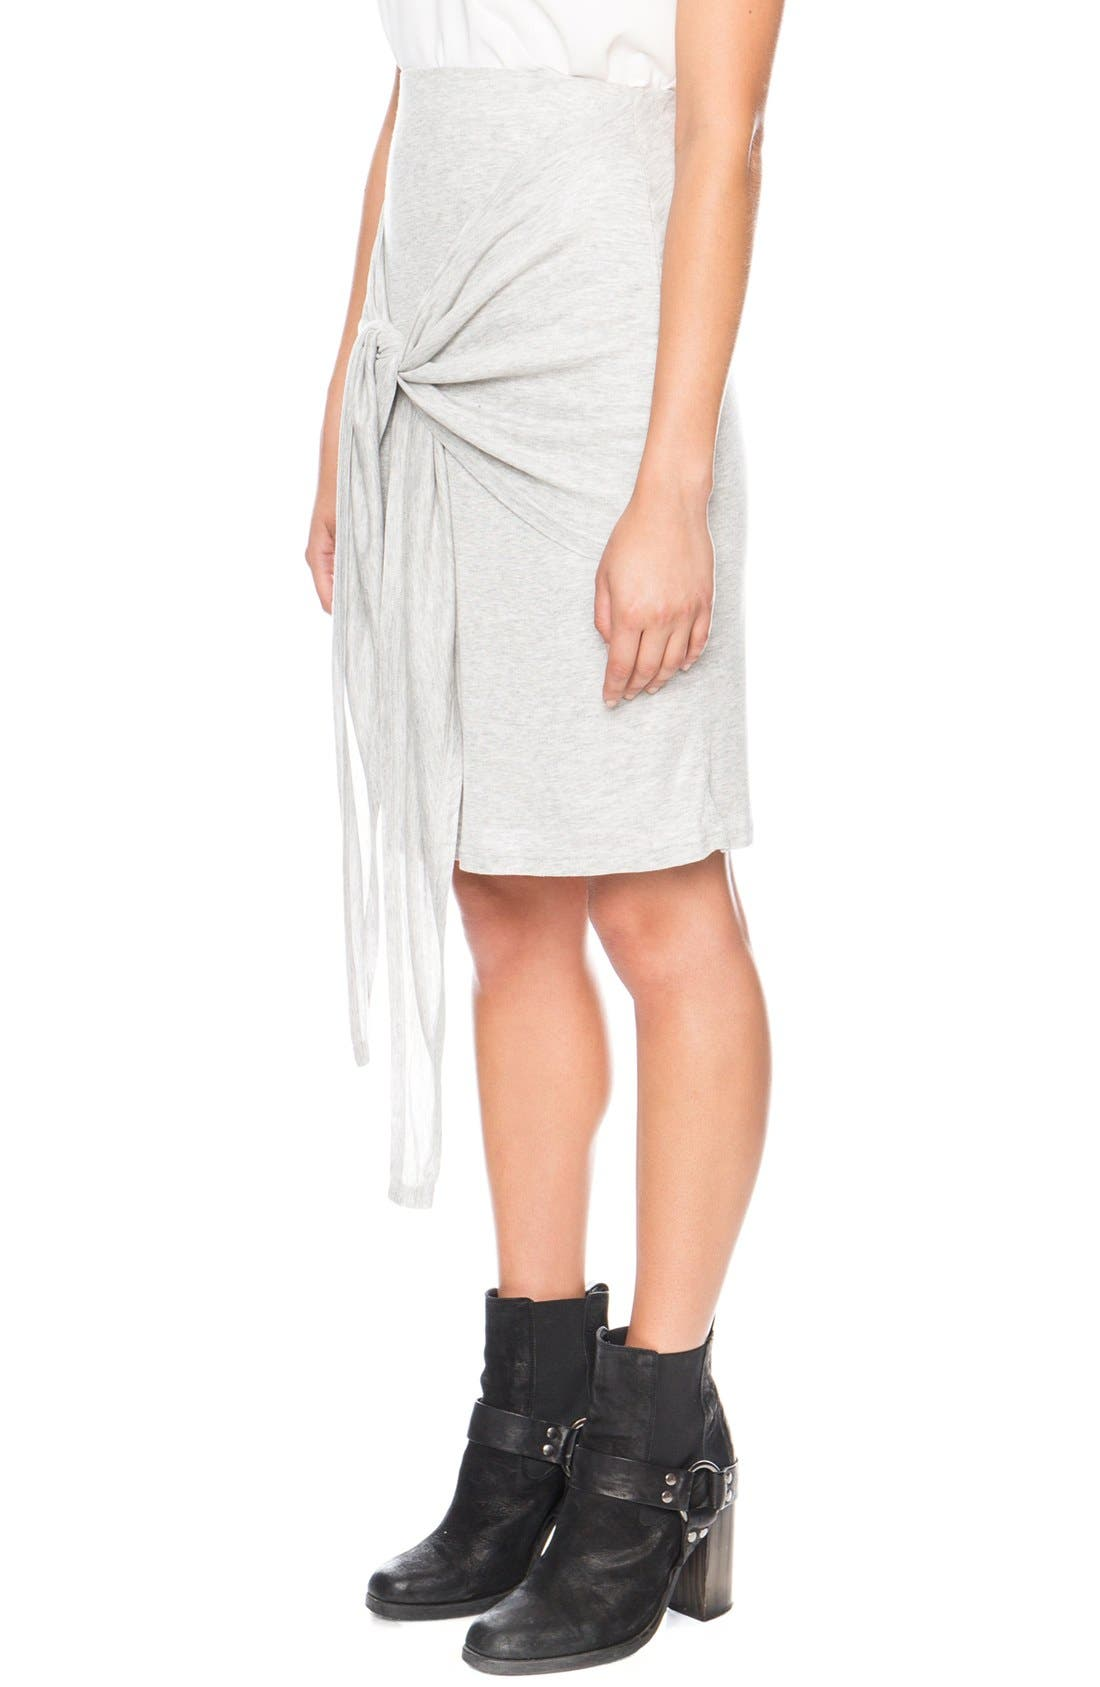 Alternate Image 3  - The Fifth Label 'Discovery' Knit Pencil Skirt